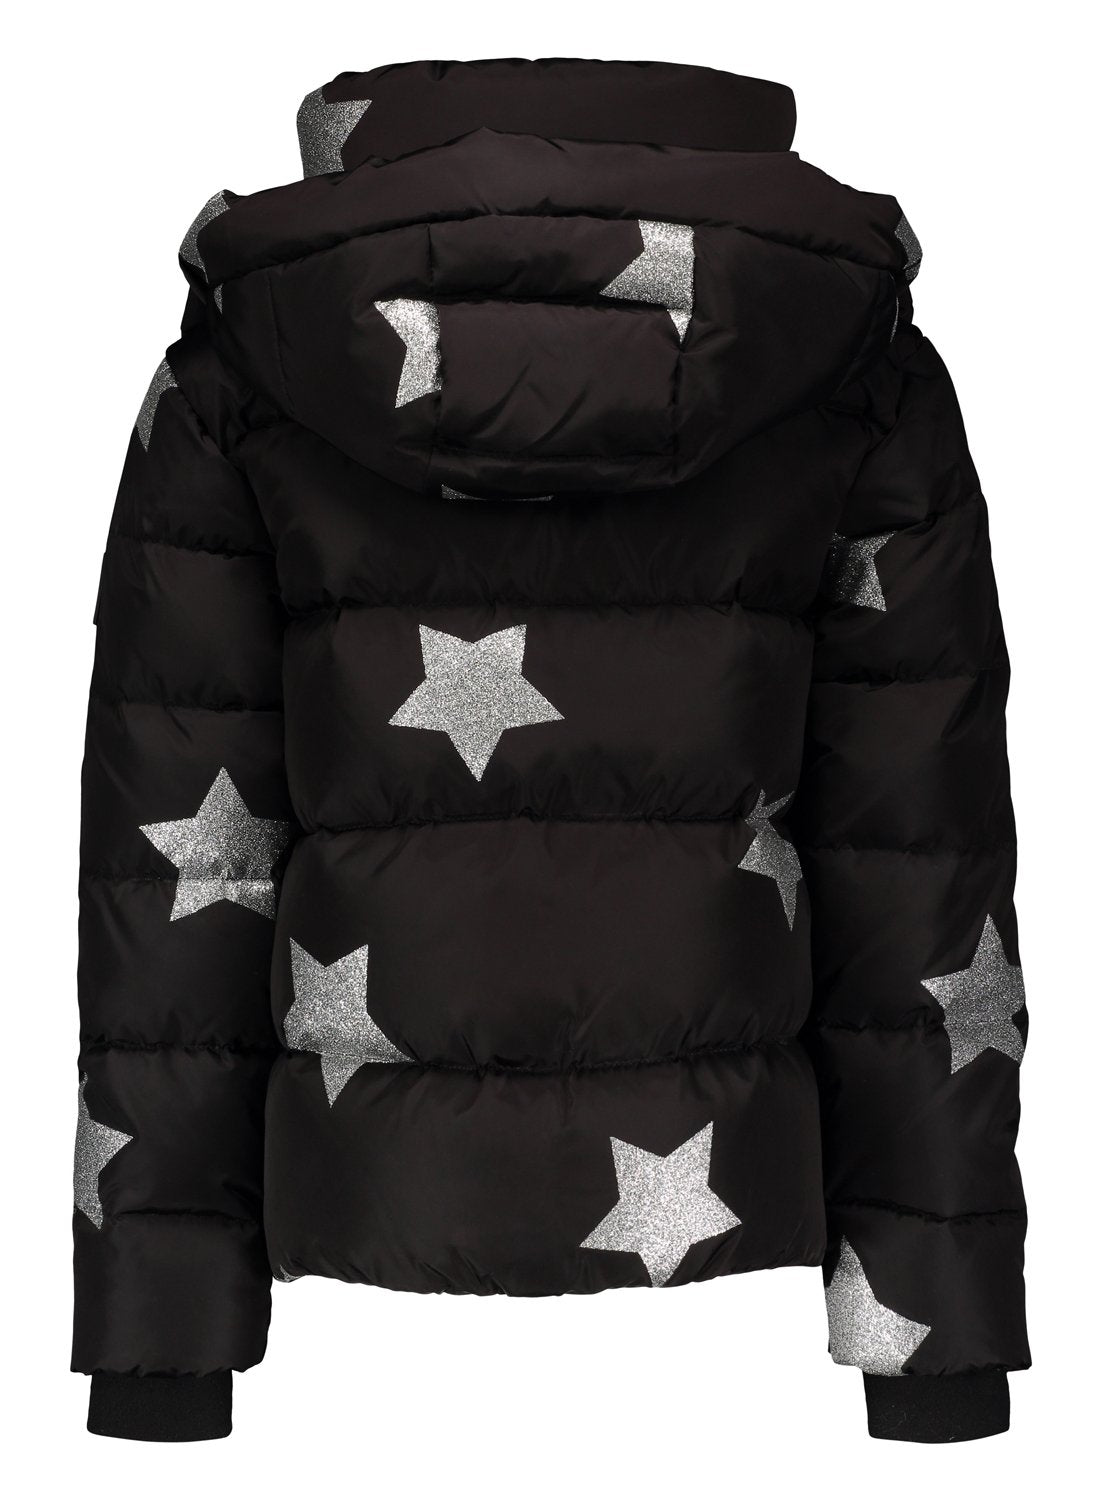 GIRLS STAR ANNABELLE GIRLS STAR ANNABELLE - SAM. New York Sam nyc jacket